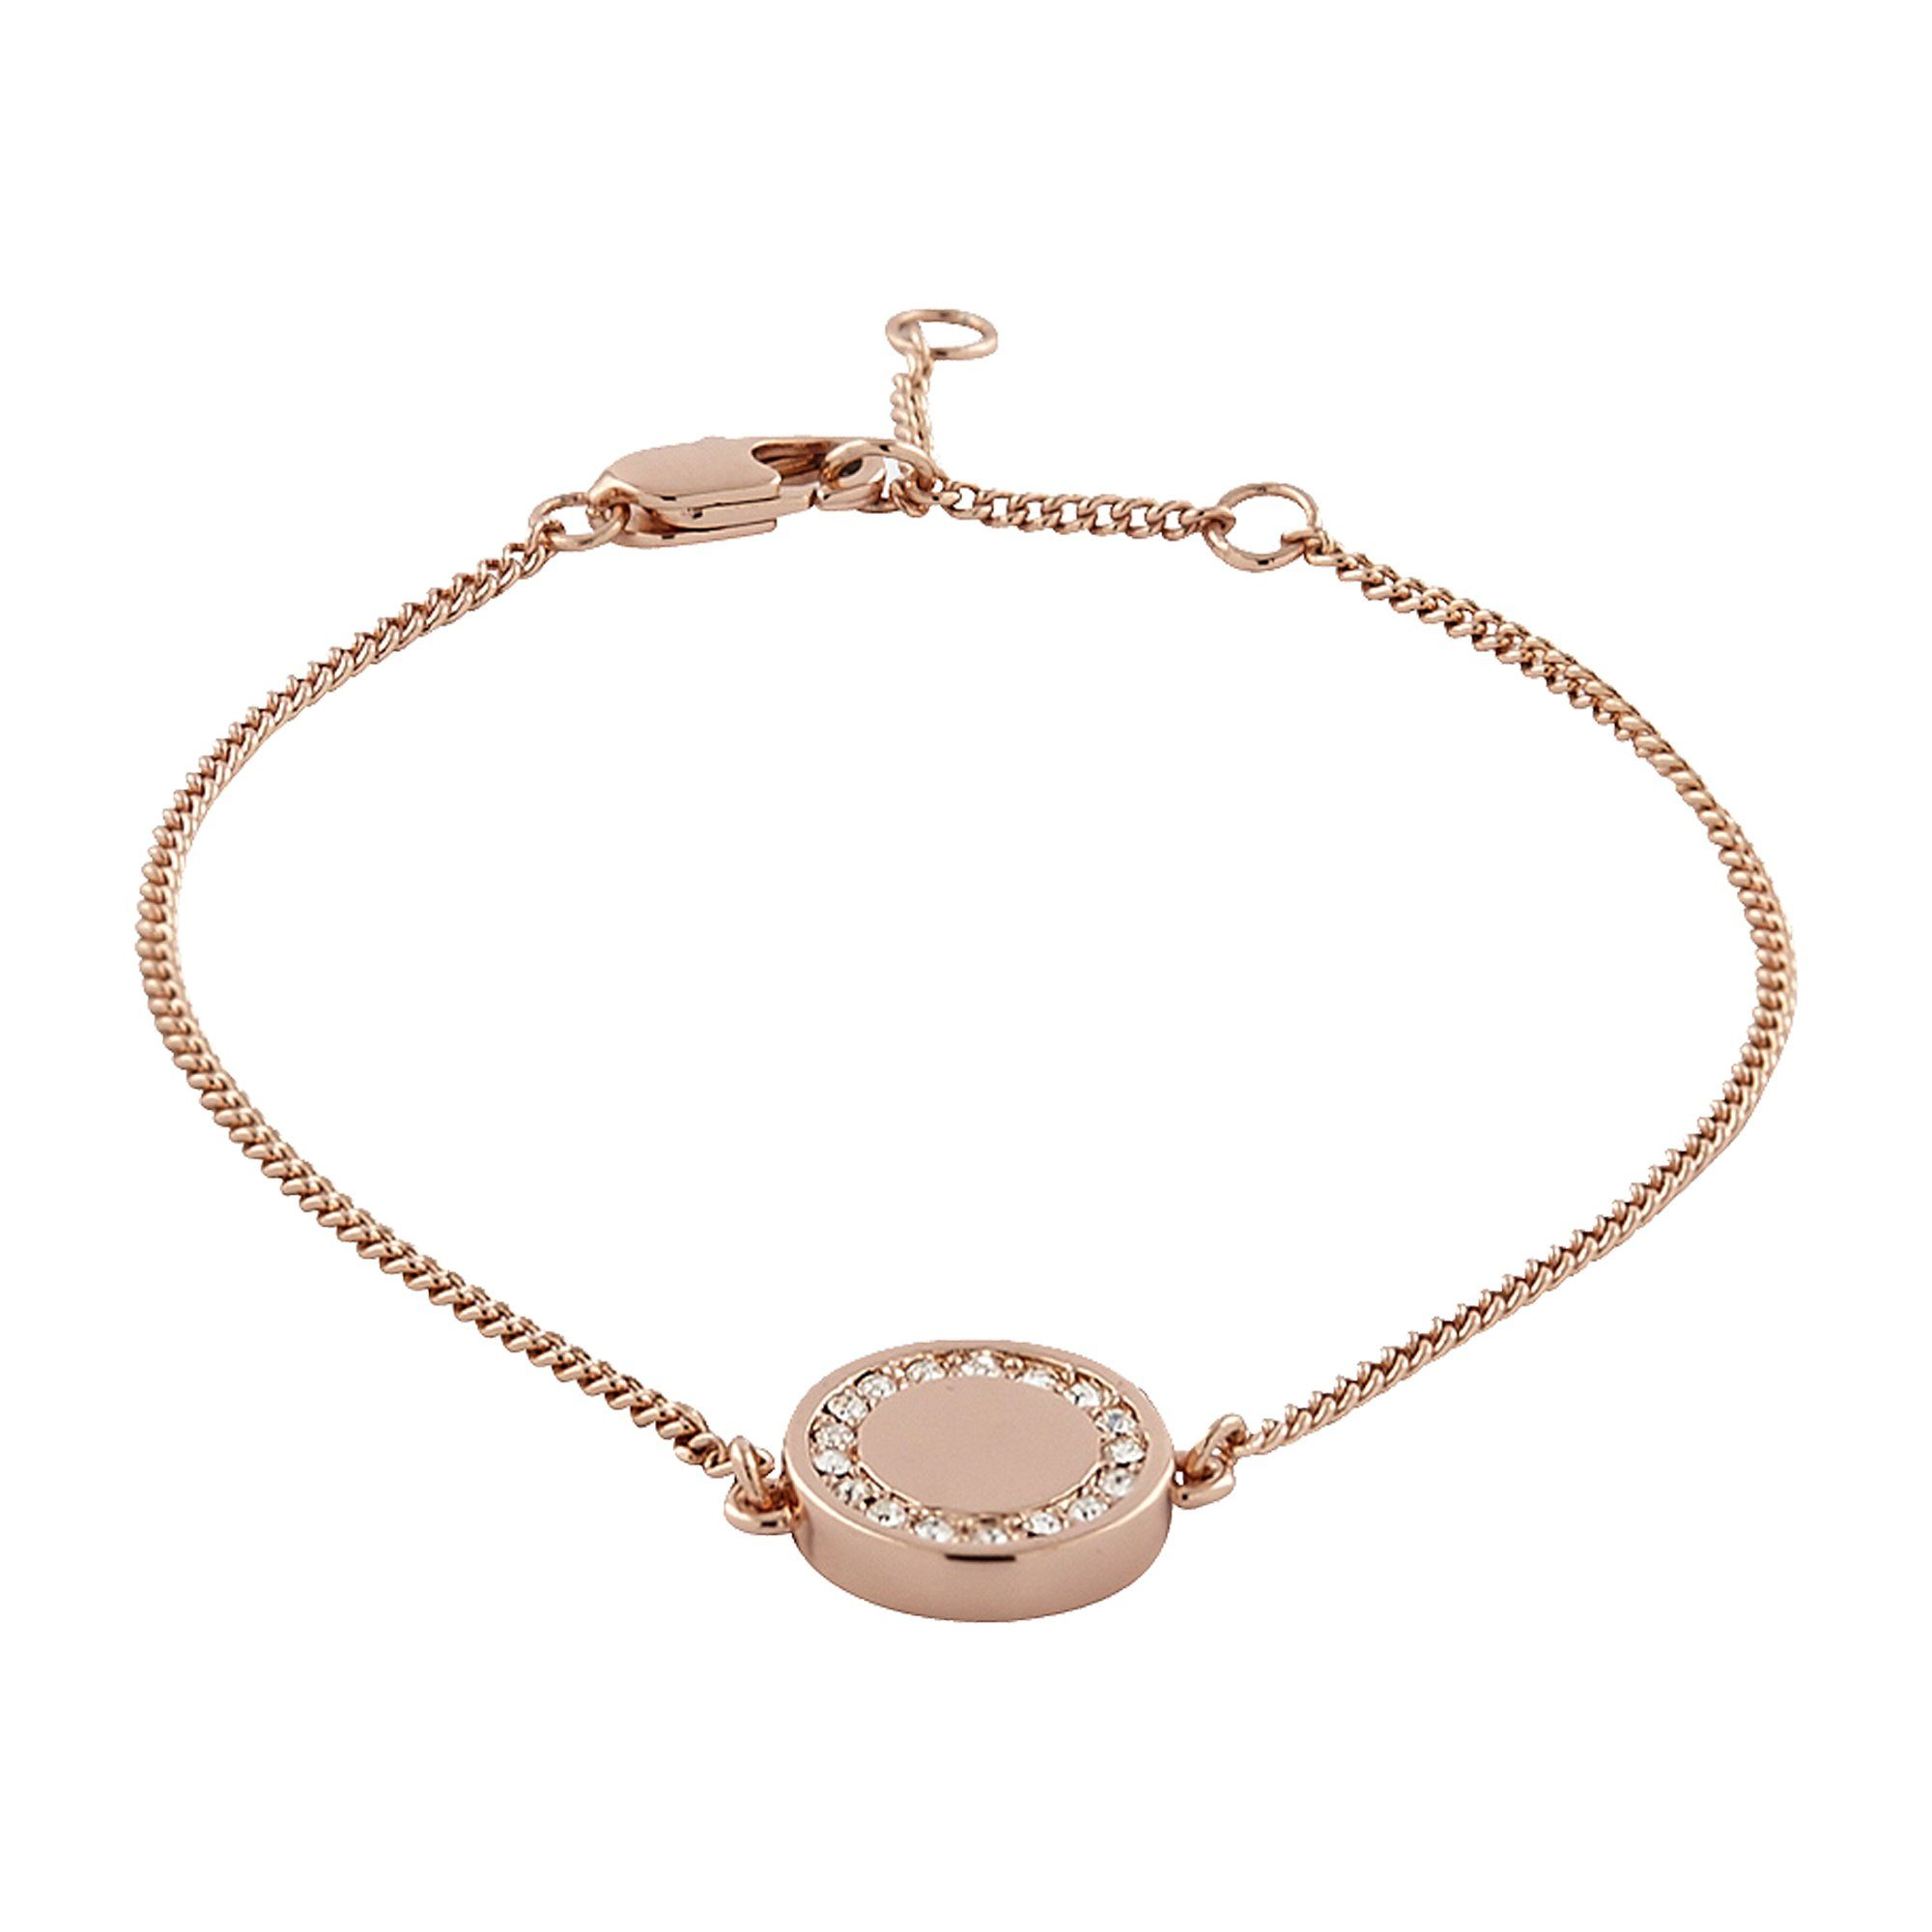 Buckley London Armschmuck Messing rosévergoldet mit Kristallen